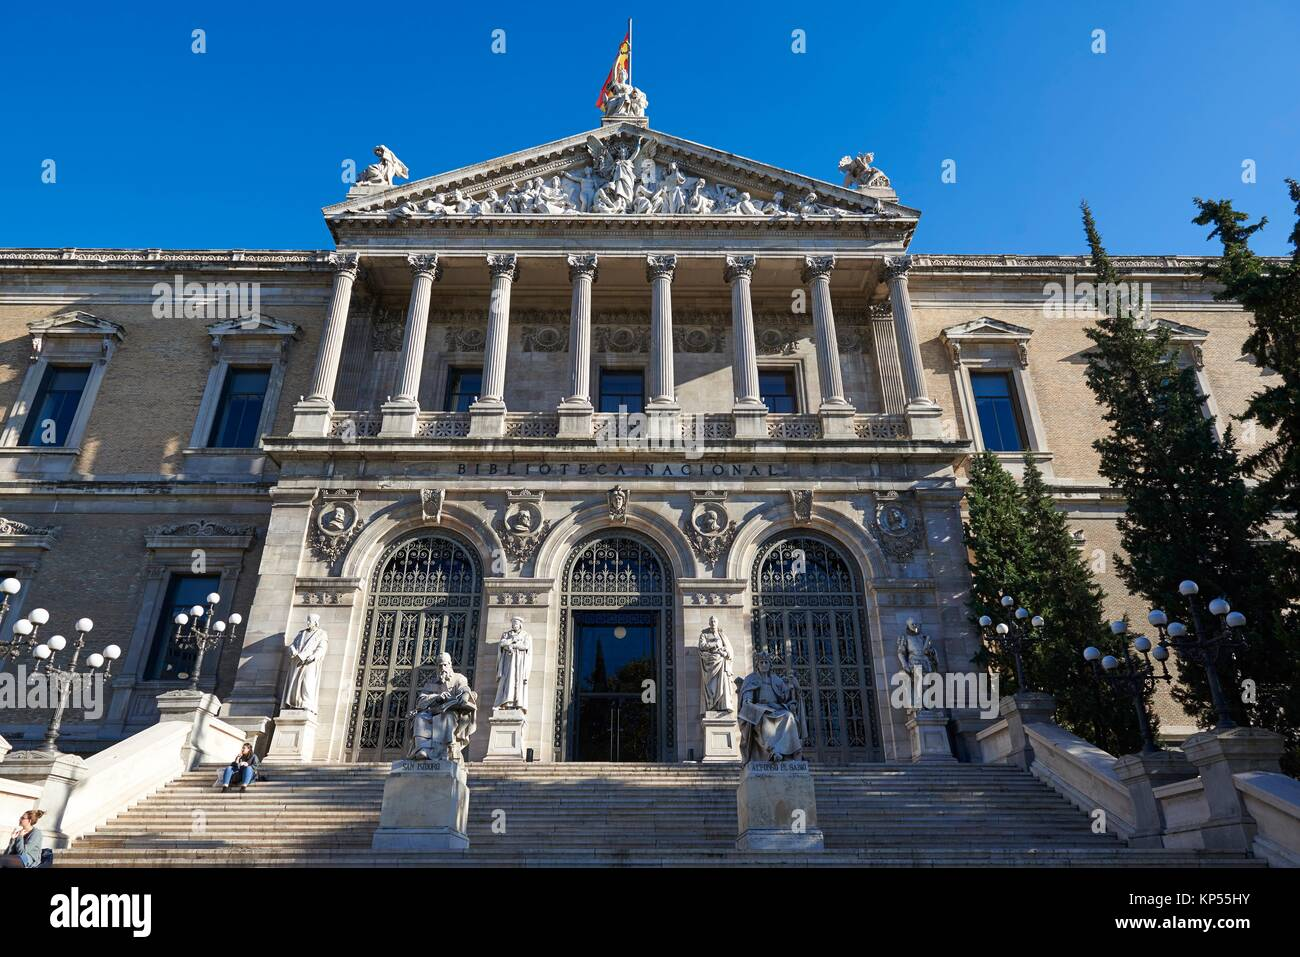 National Library of Madrid, Paseo de Recoletos, Spain. Europe, architecture and art. Stock Photo